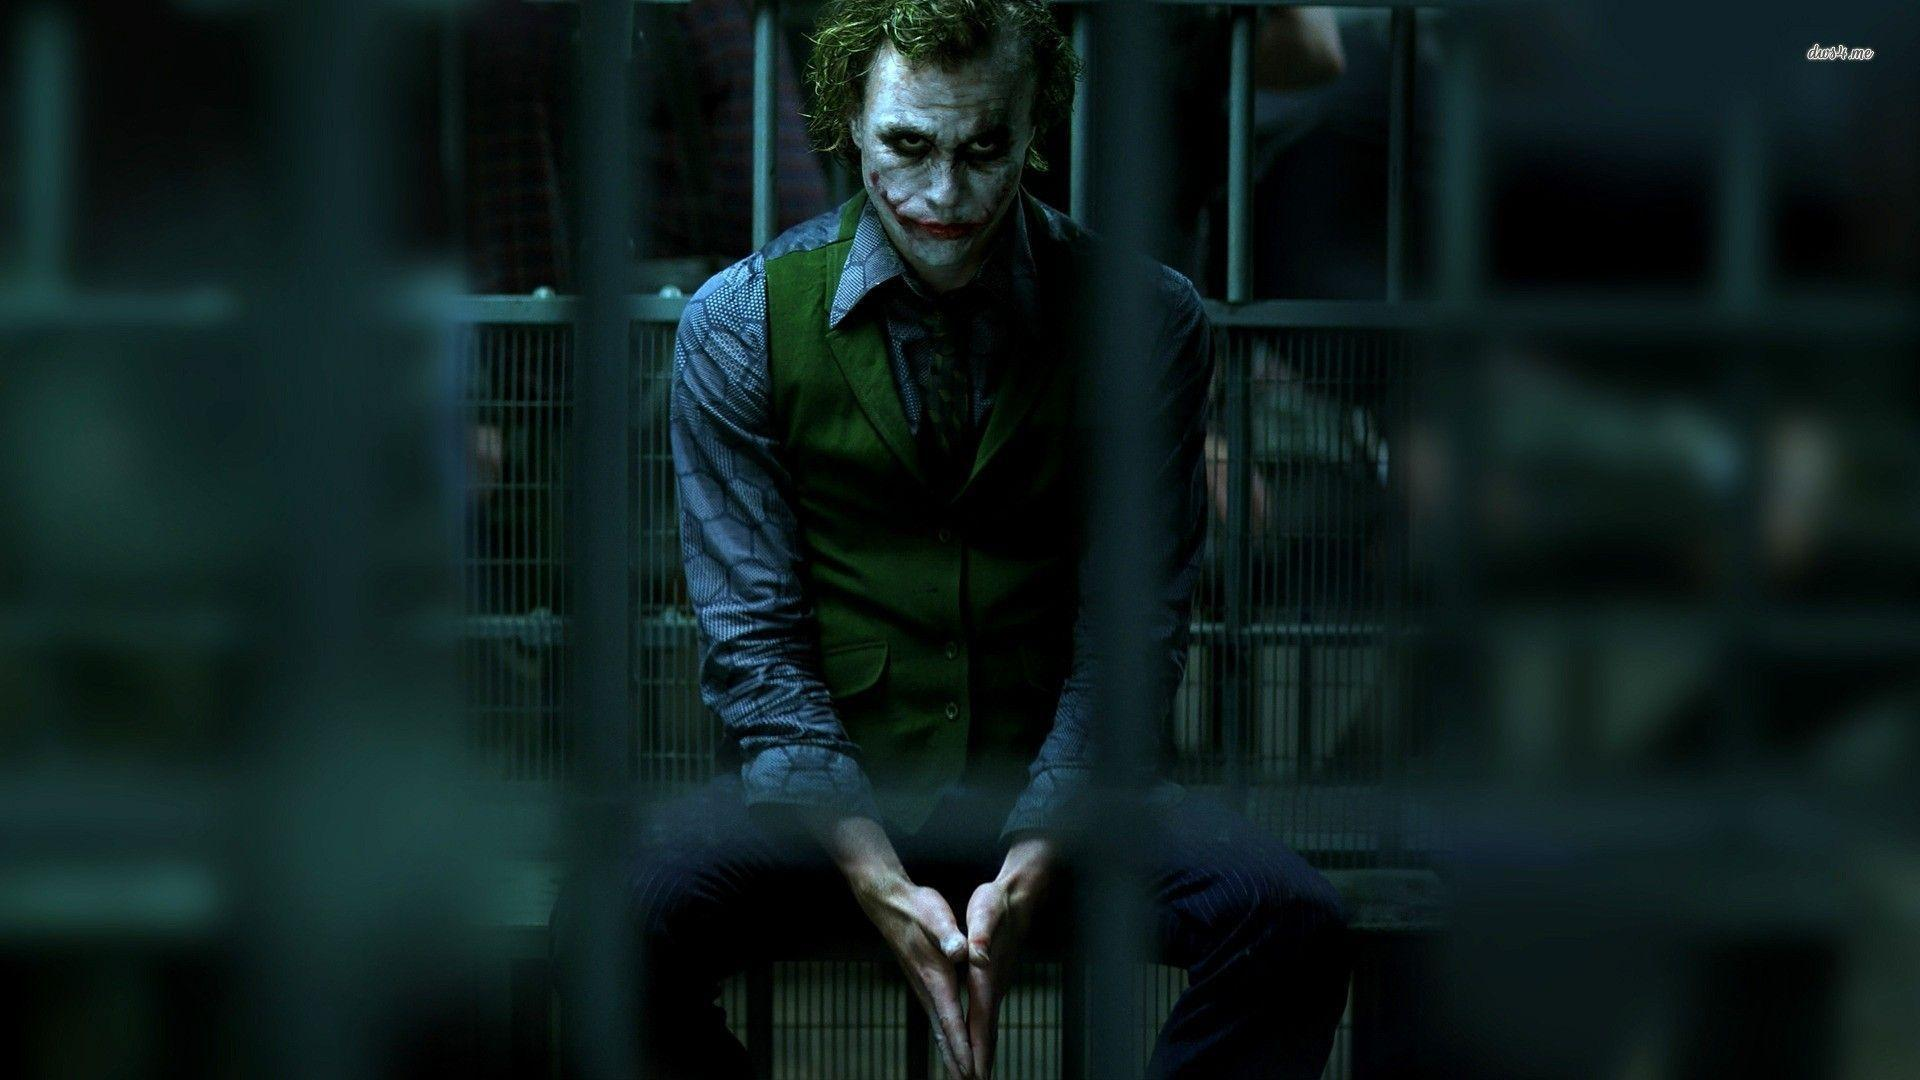 Dark Knight Joker In 4k Ultra Hd Wallpapers Top Free Dark